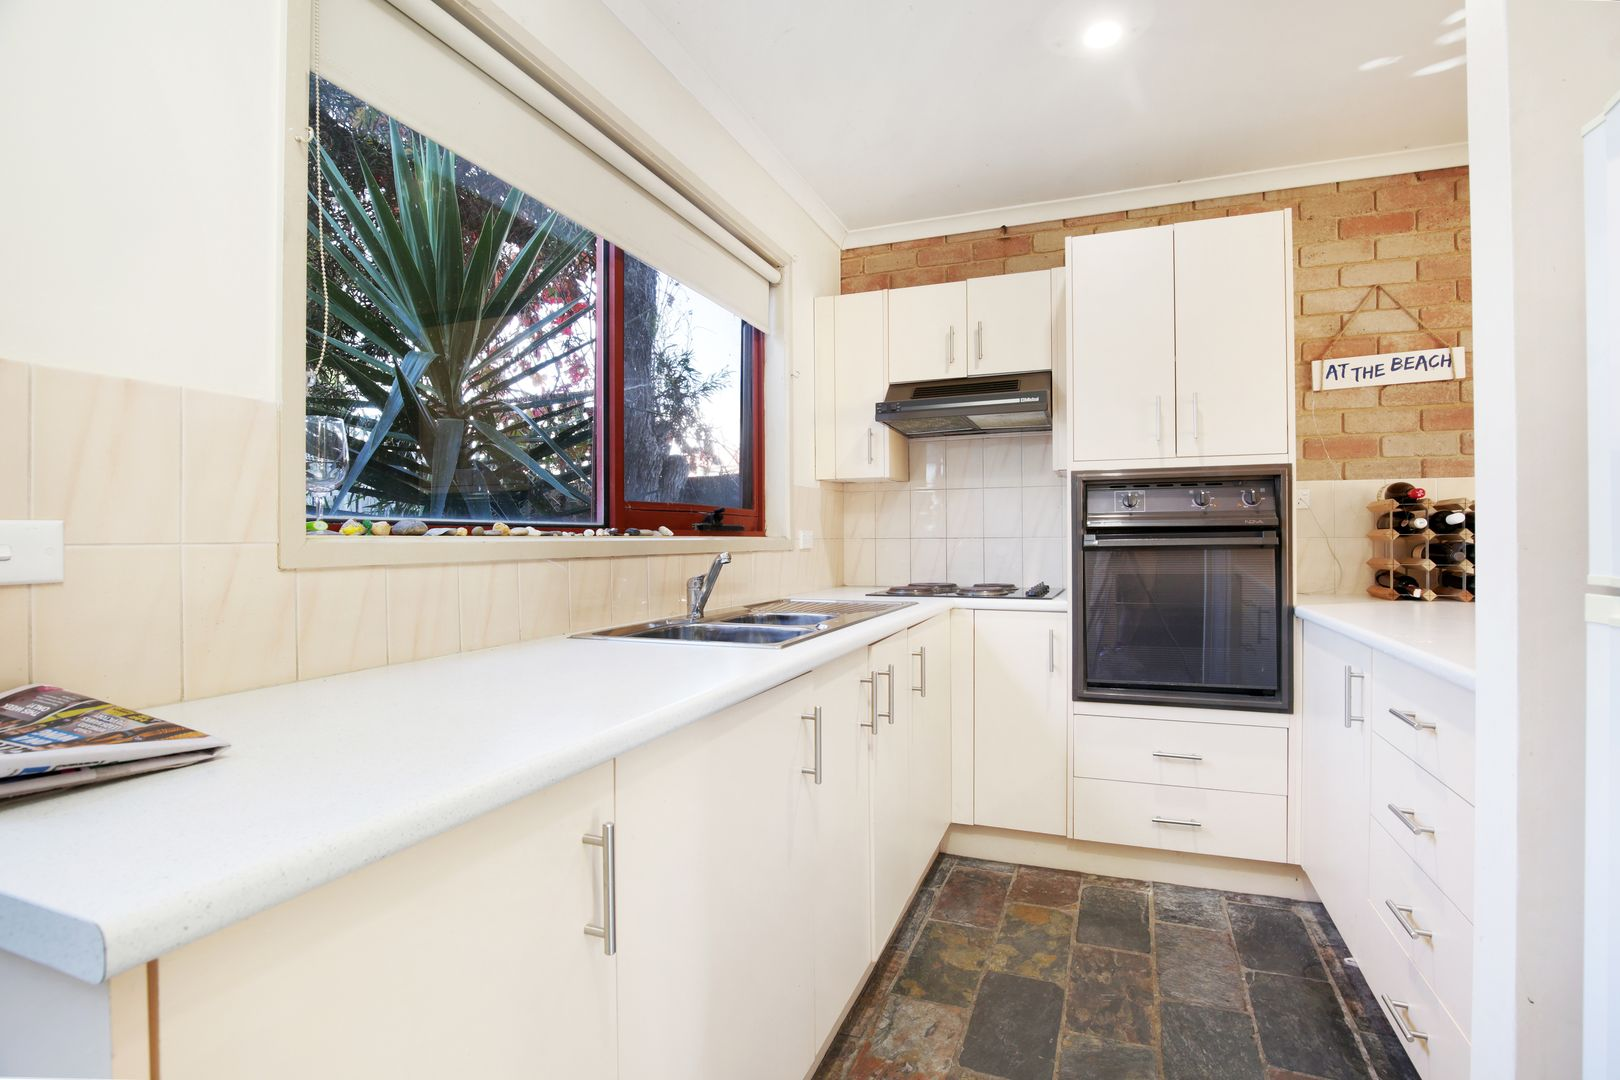 6/71 Geelong Road, Torquay VIC 3228, Image 2